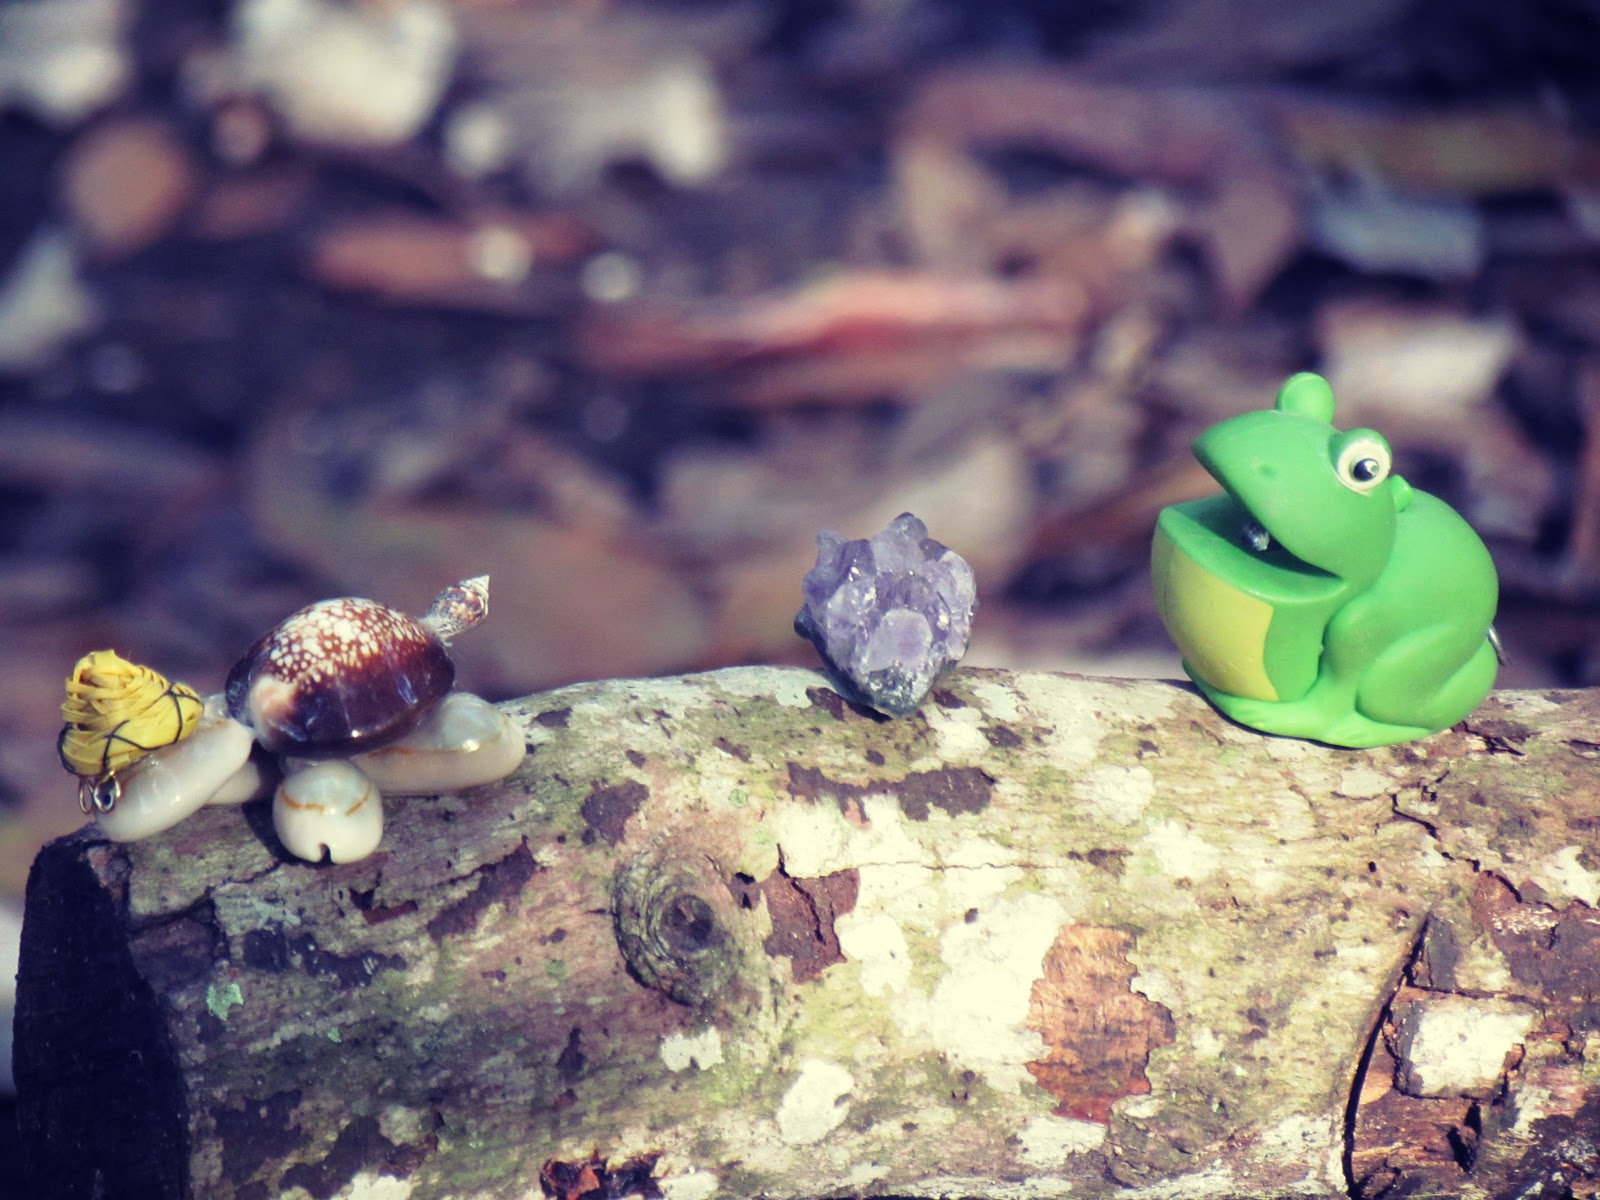 A turtle made out of sea shells, an amethyst healing stone, and green toy frog on a wooden log in mother nature